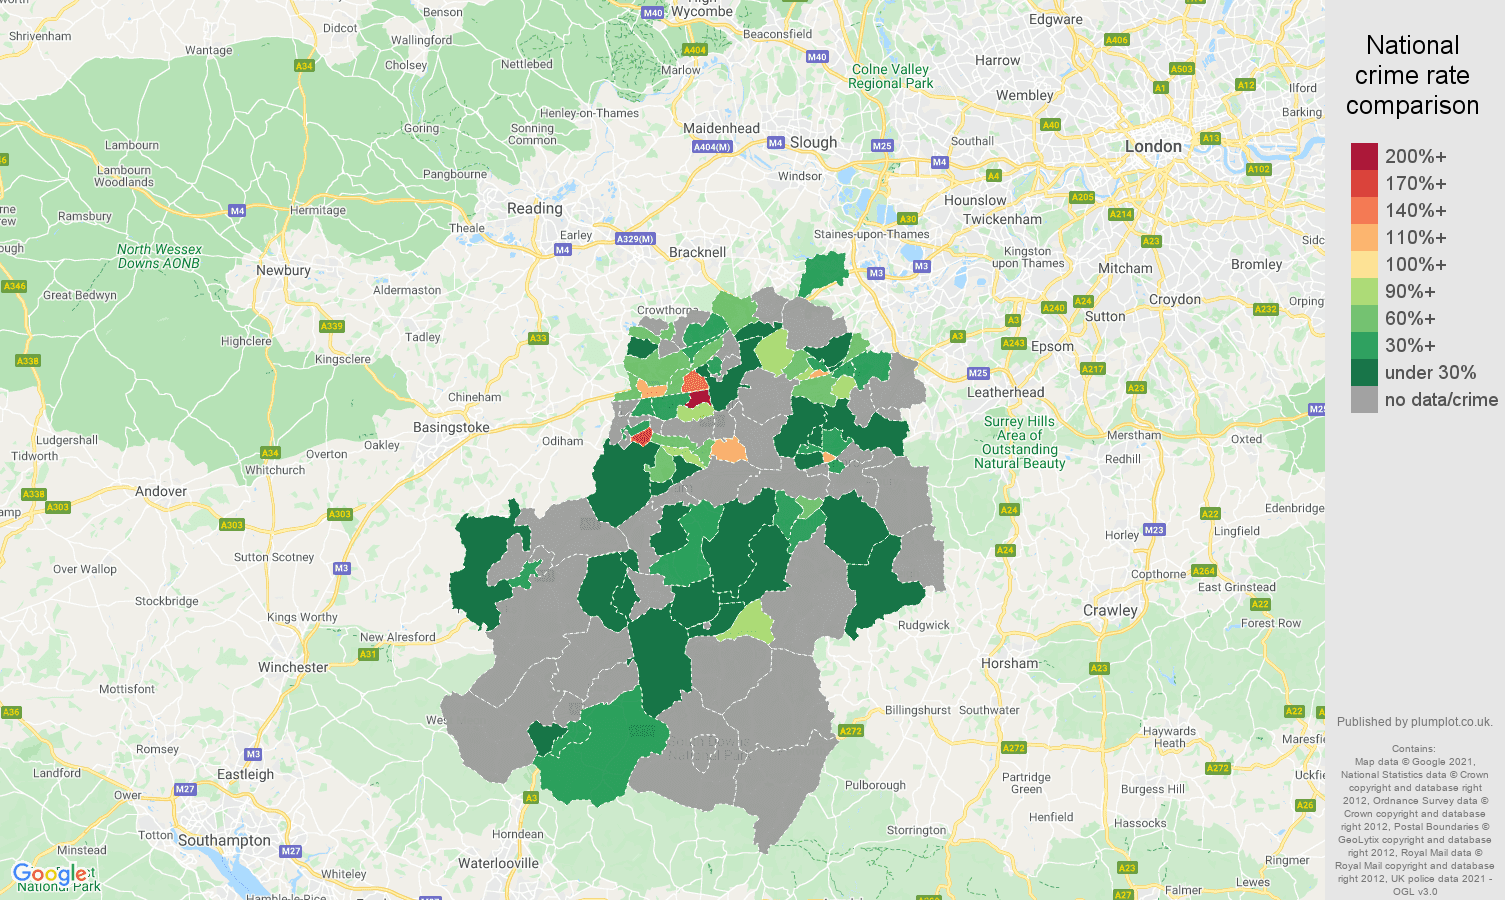 Guildford robbery crime rate comparison map